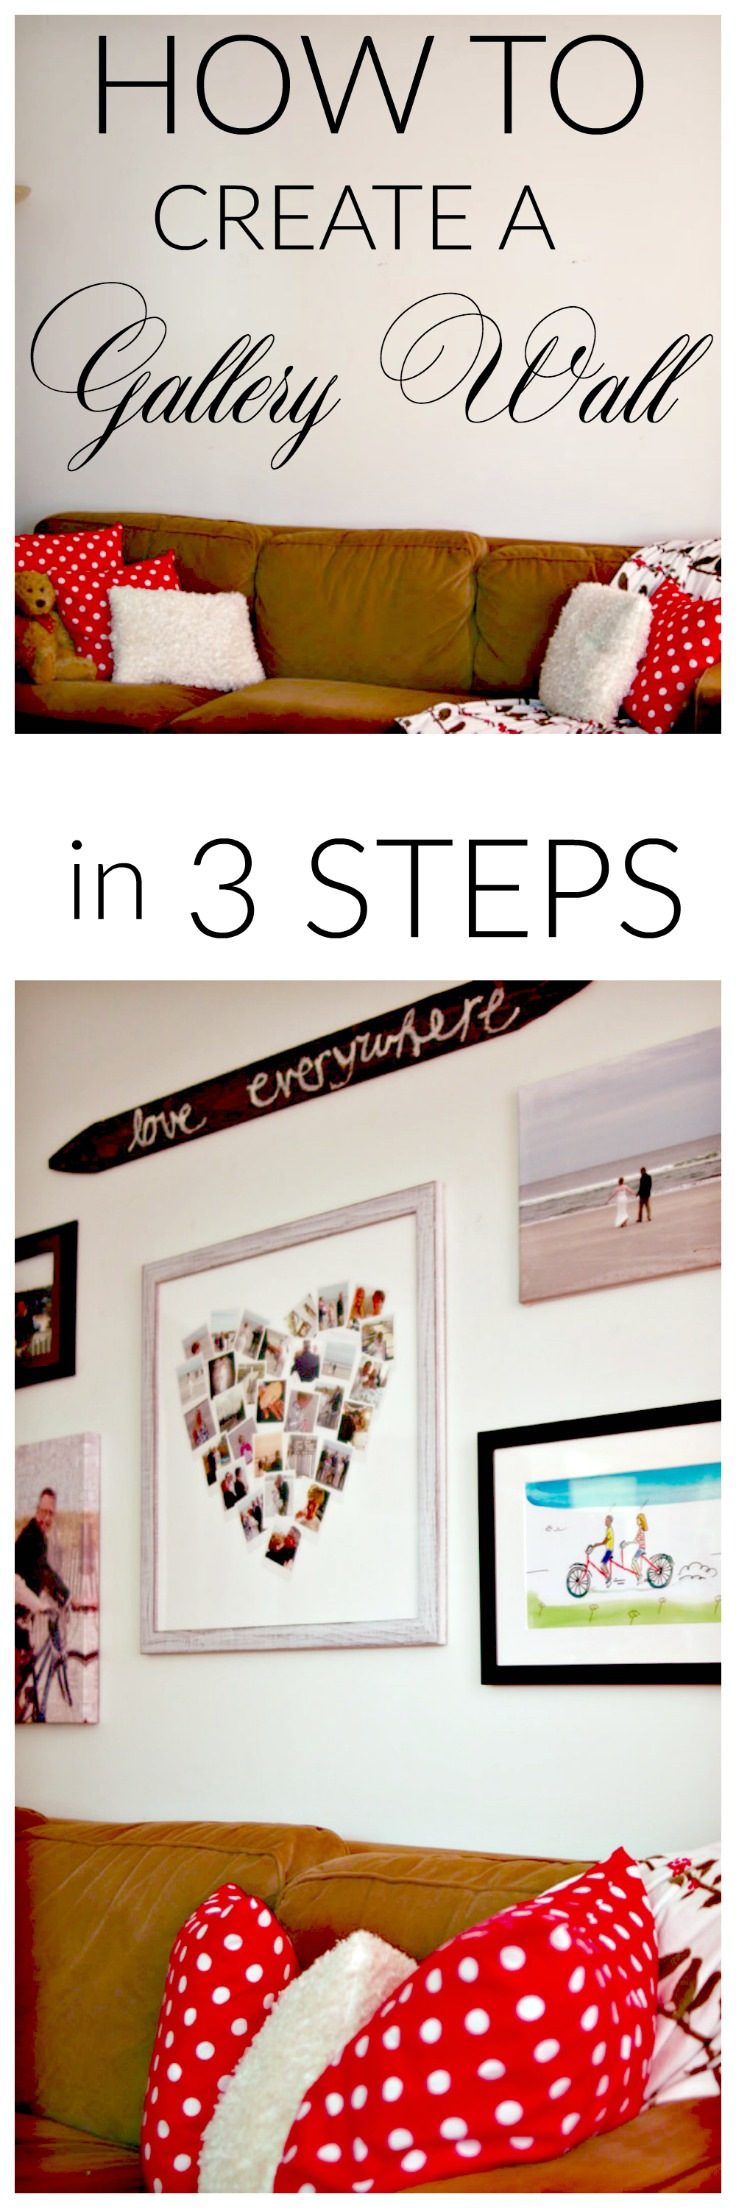 How to Create a Gallery Wall in 3 Steps